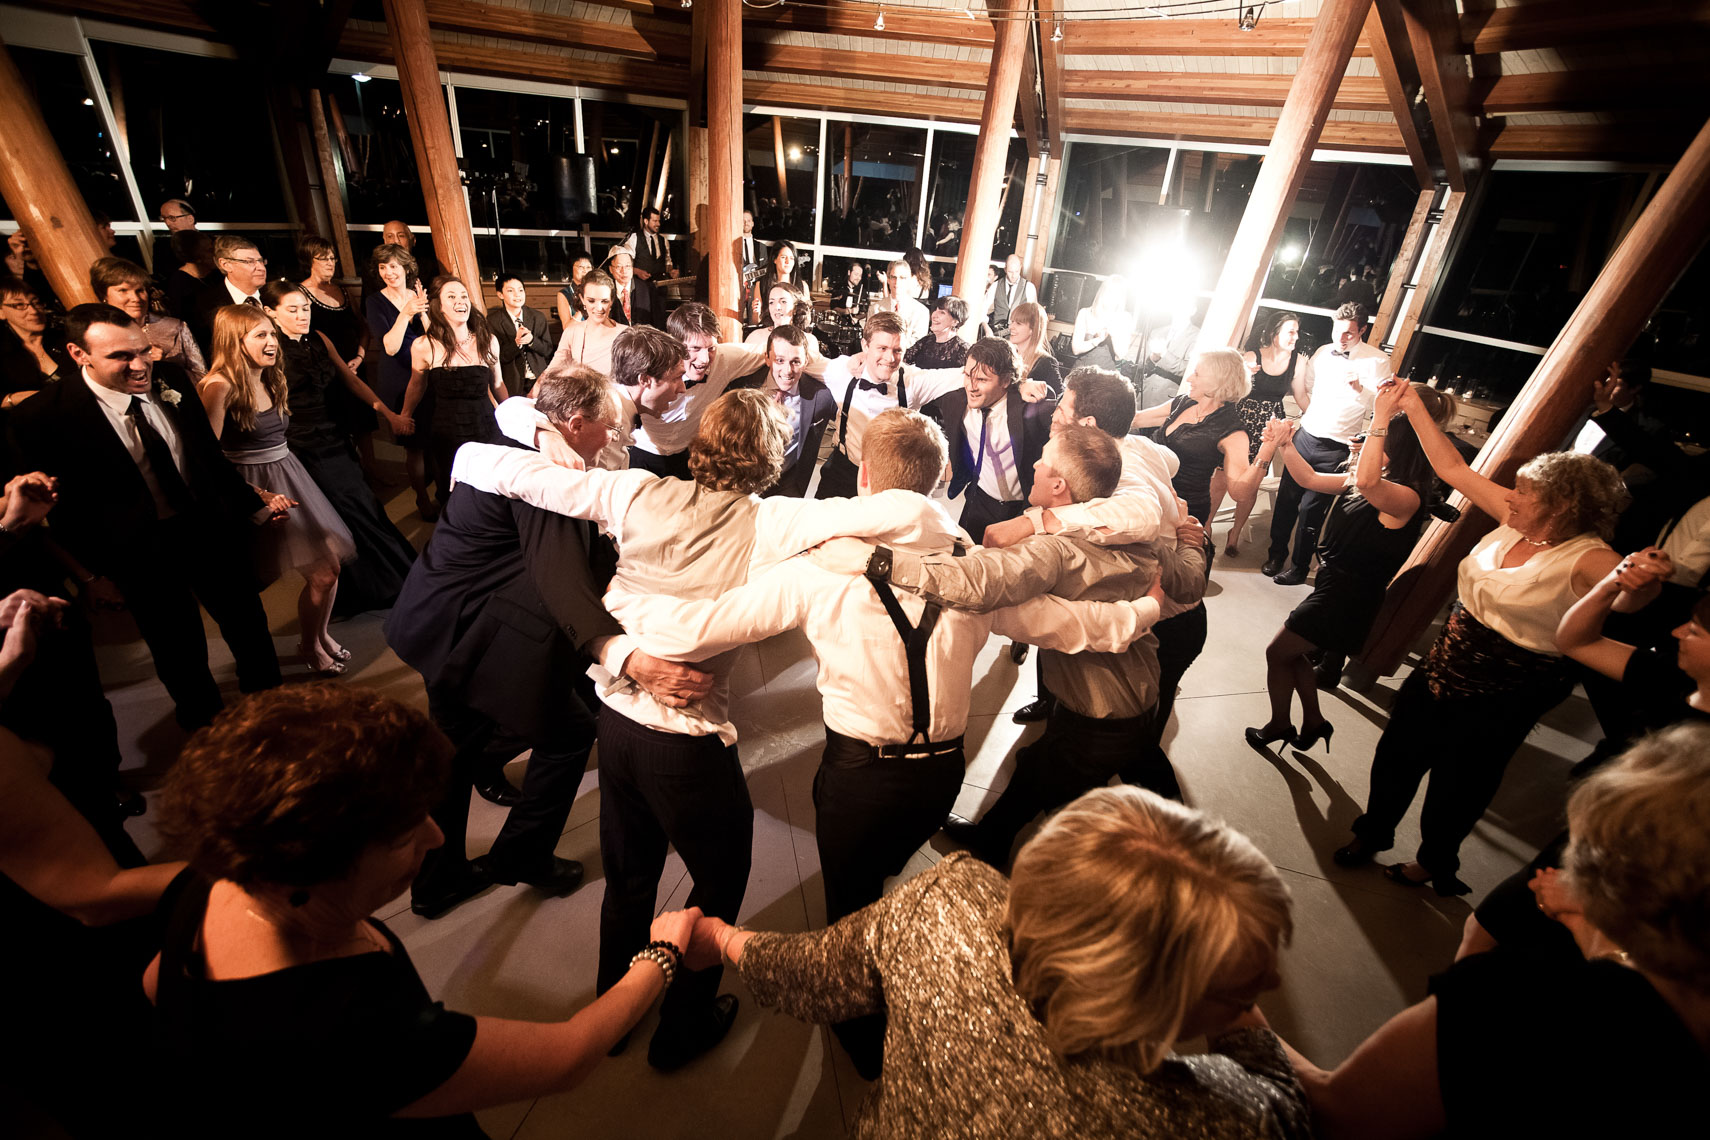 Dance after chuppah at Jewish wedding at the SLCC venue in Whistler BC